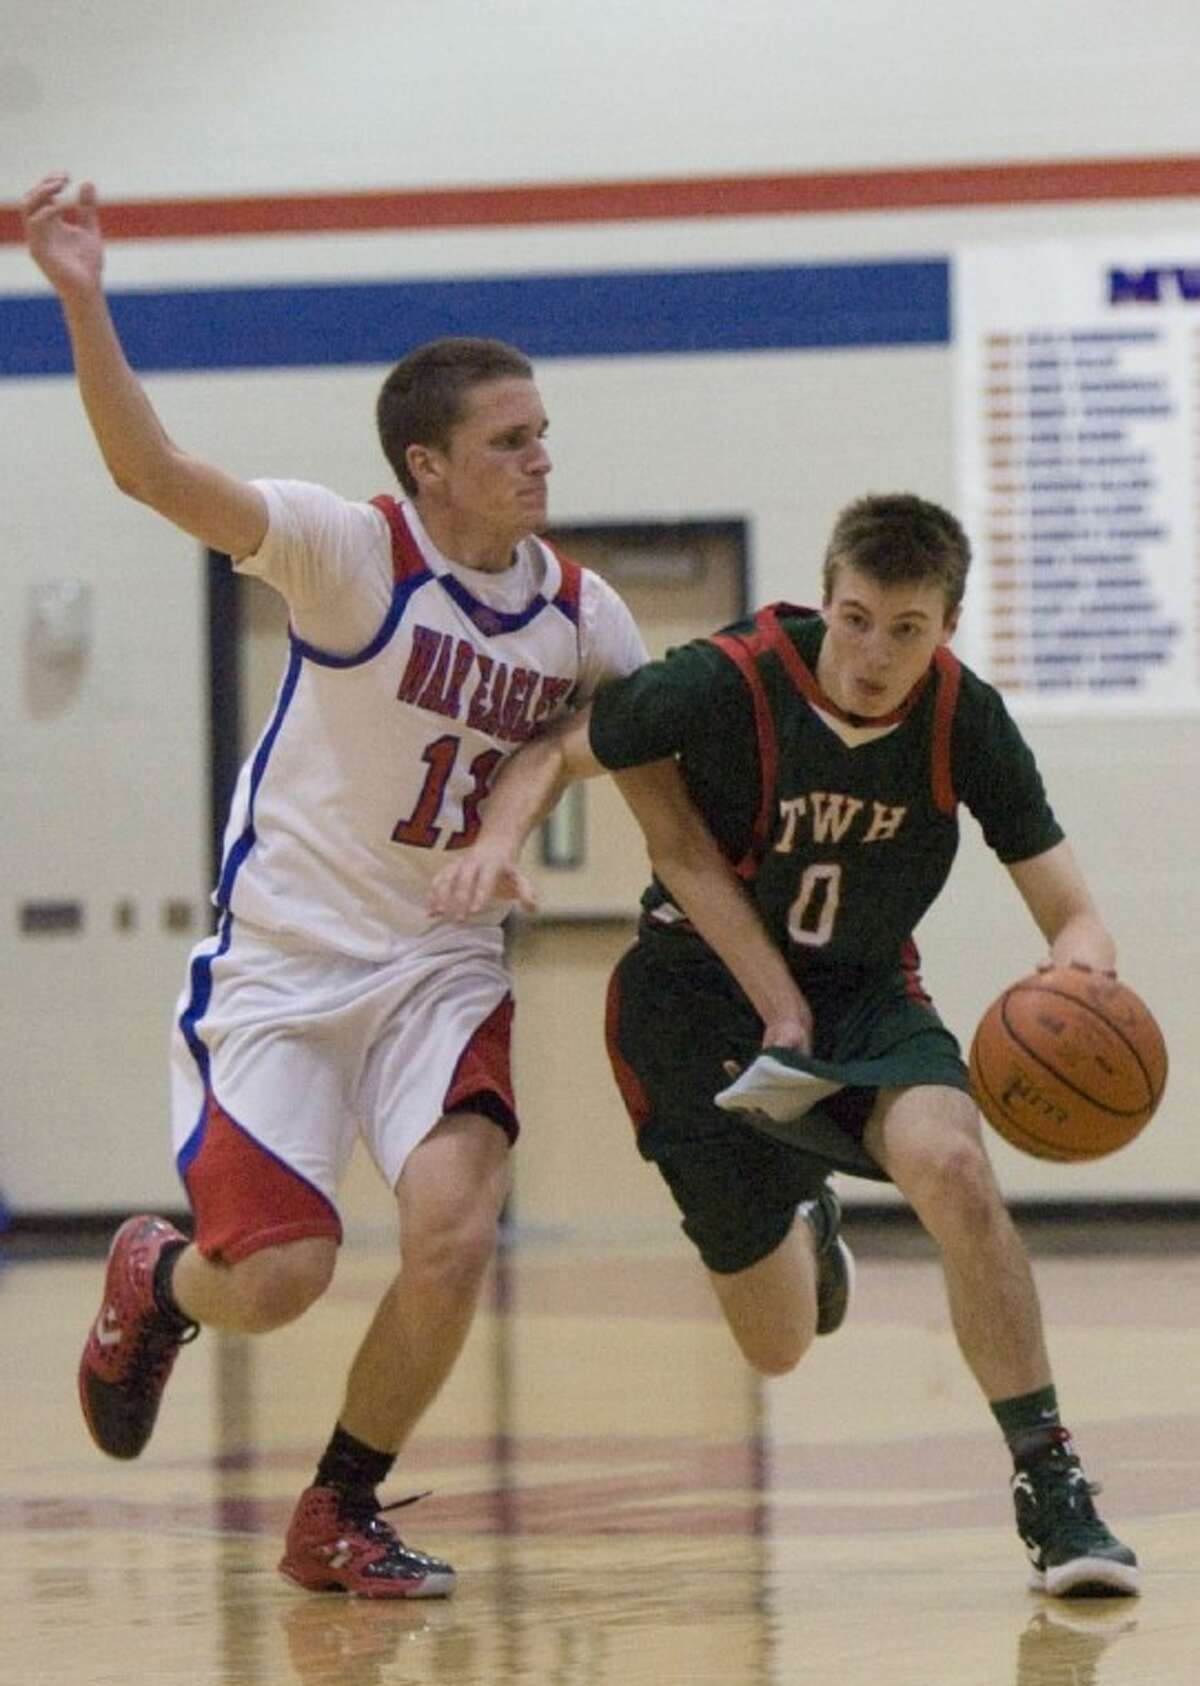 The Woodlands' Brian Baehl has helped fill the shoes of Nolan Cass, who broke his wrist Jan. 13.